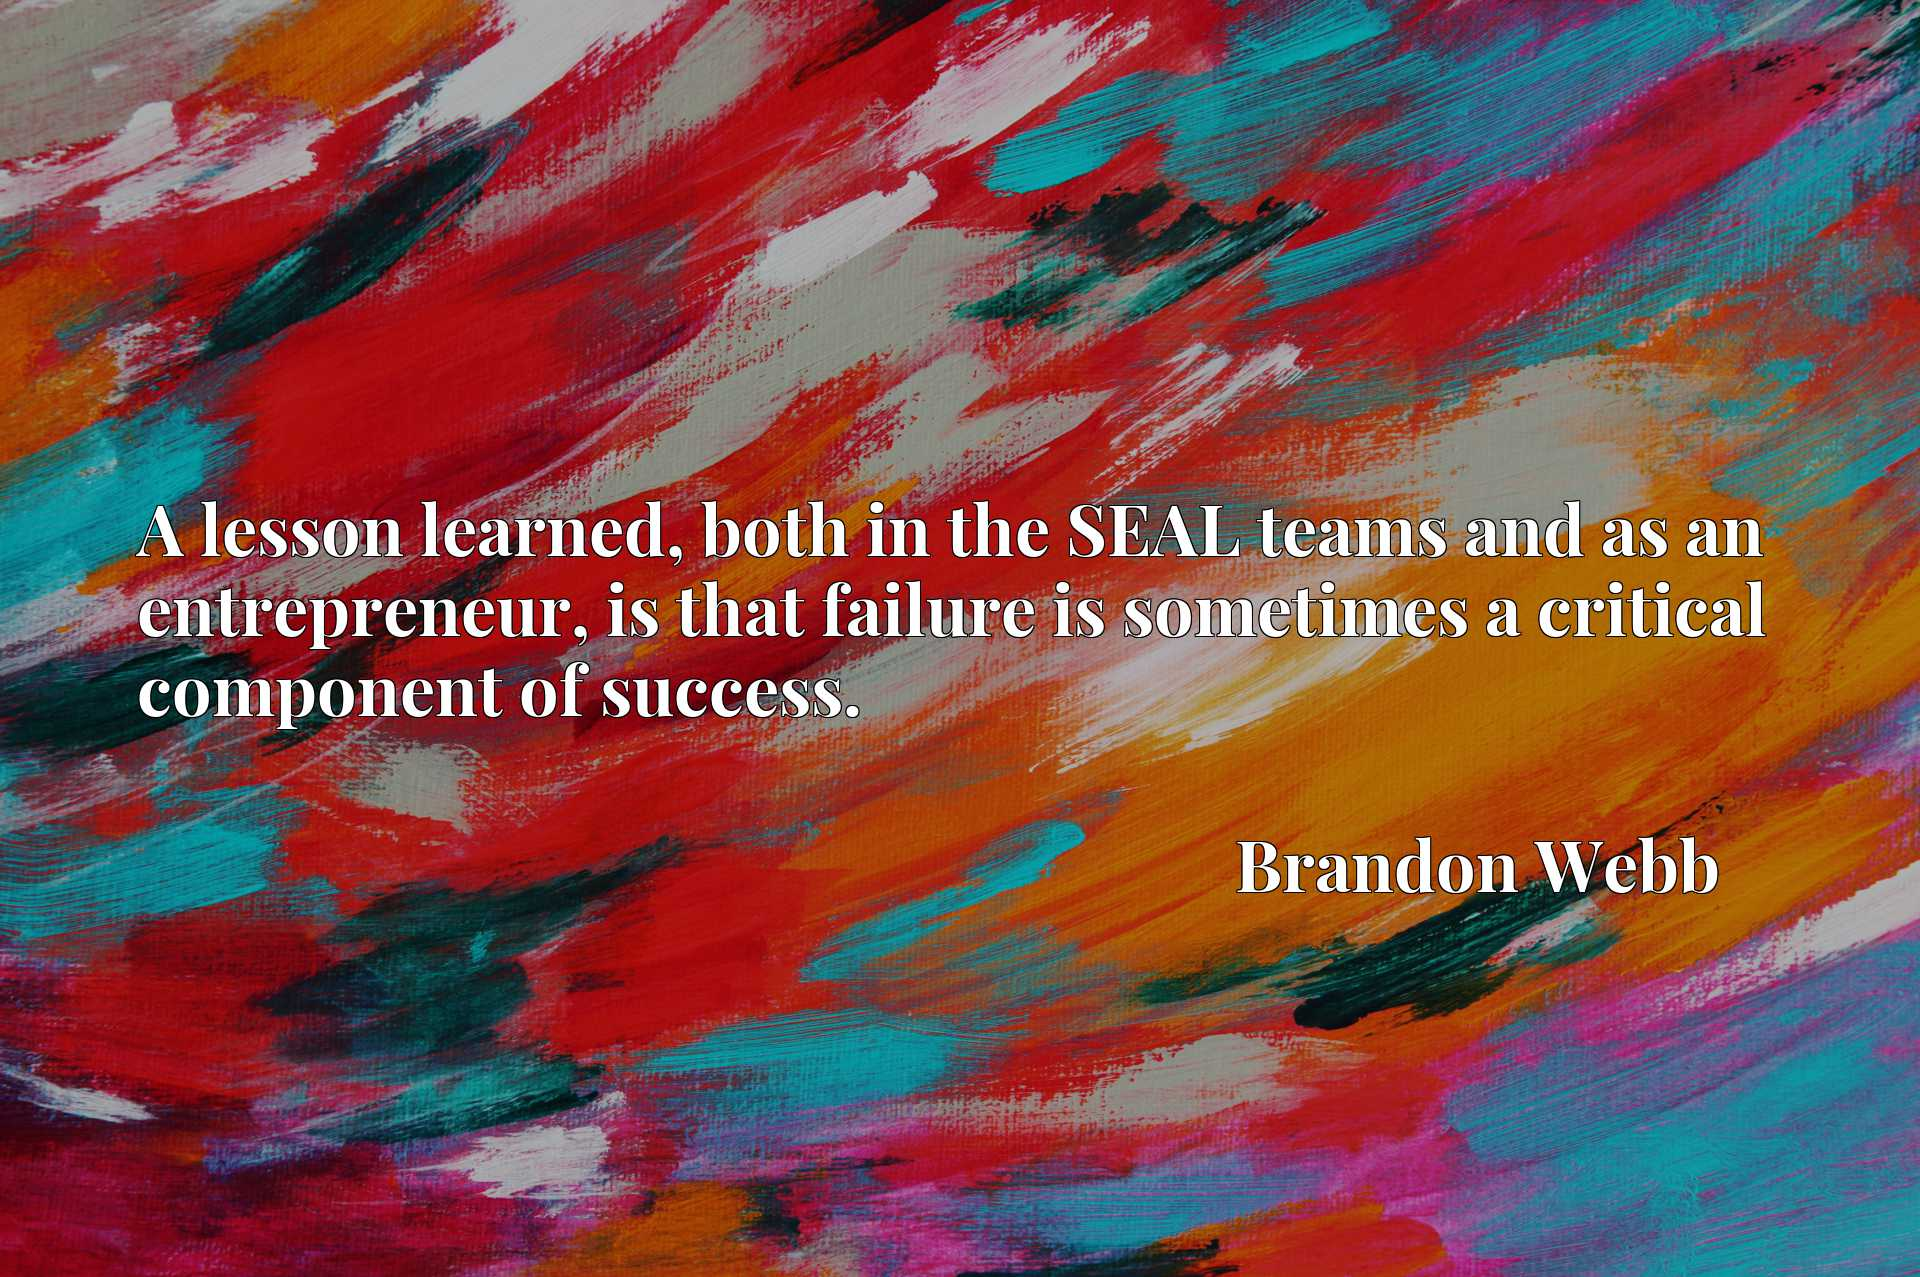 A lesson learned, both in the SEAL teams and as an entrepreneur, is that failure is sometimes a critical component of success.